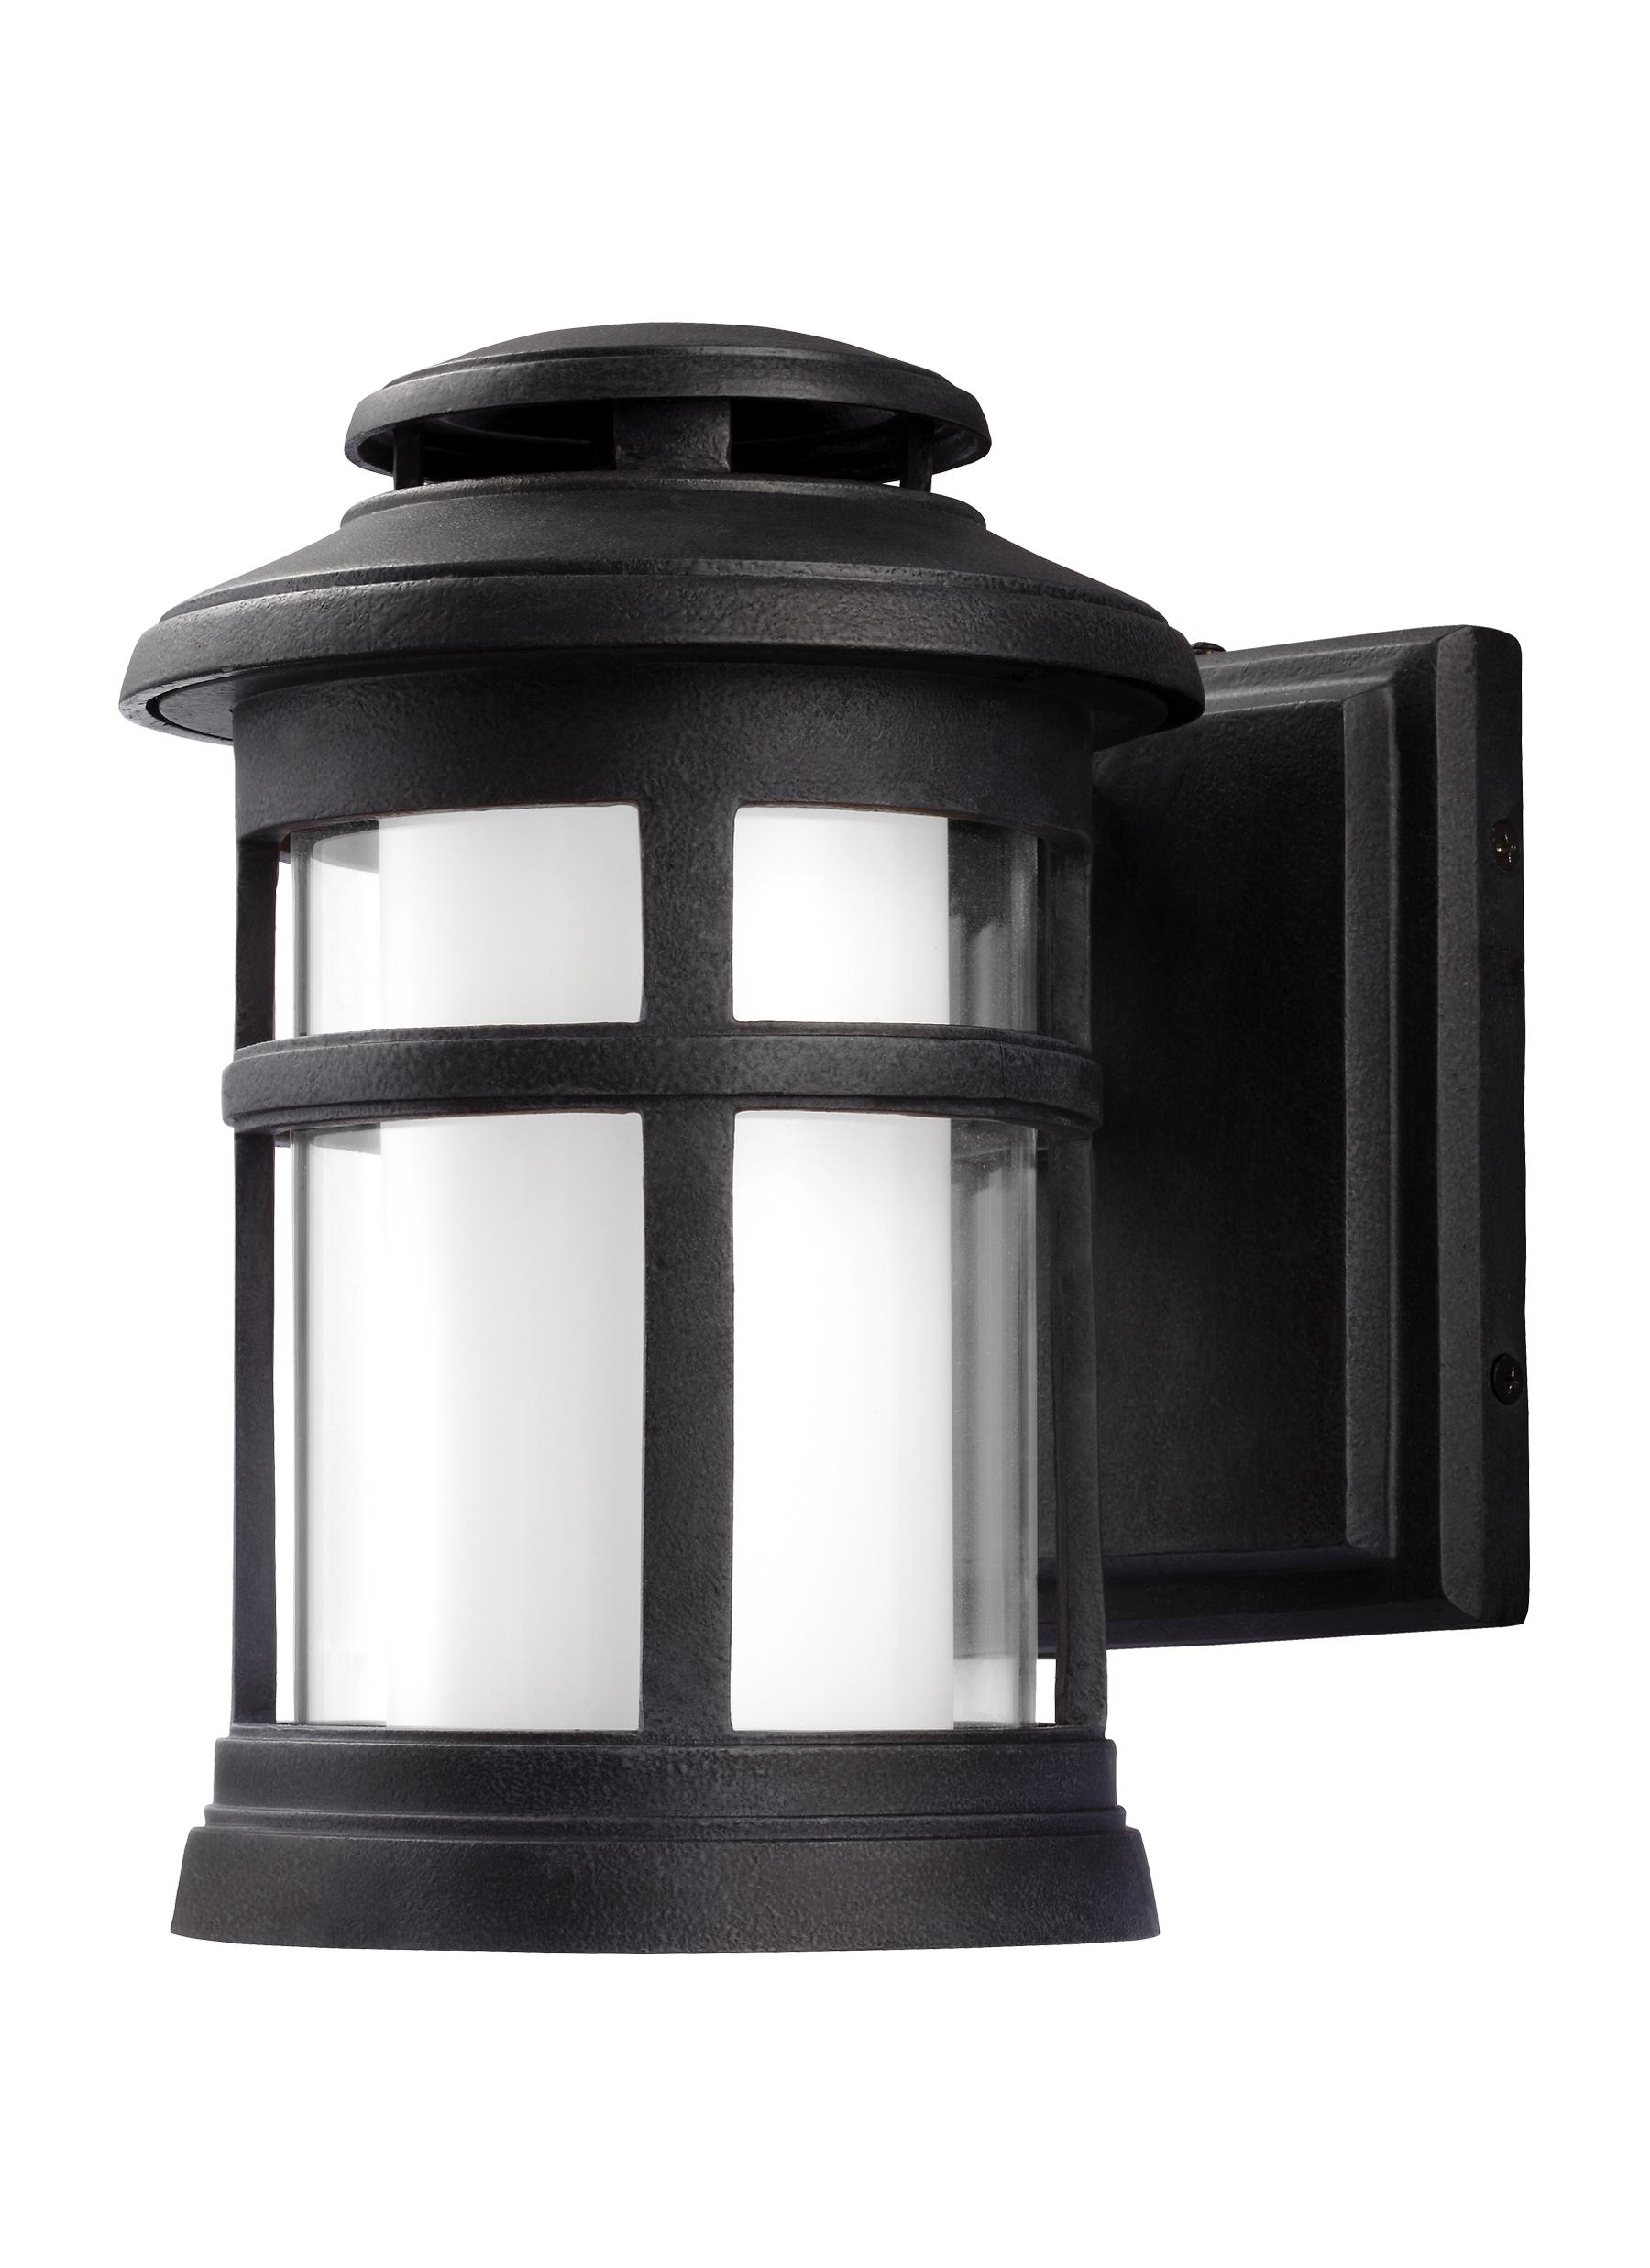 Newest Zinc Outdoor Lanterns For Ol12500Dwz Led,1 – Light Outdoor Wall Lantern,dark Weathered Zinc (View 9 of 20)